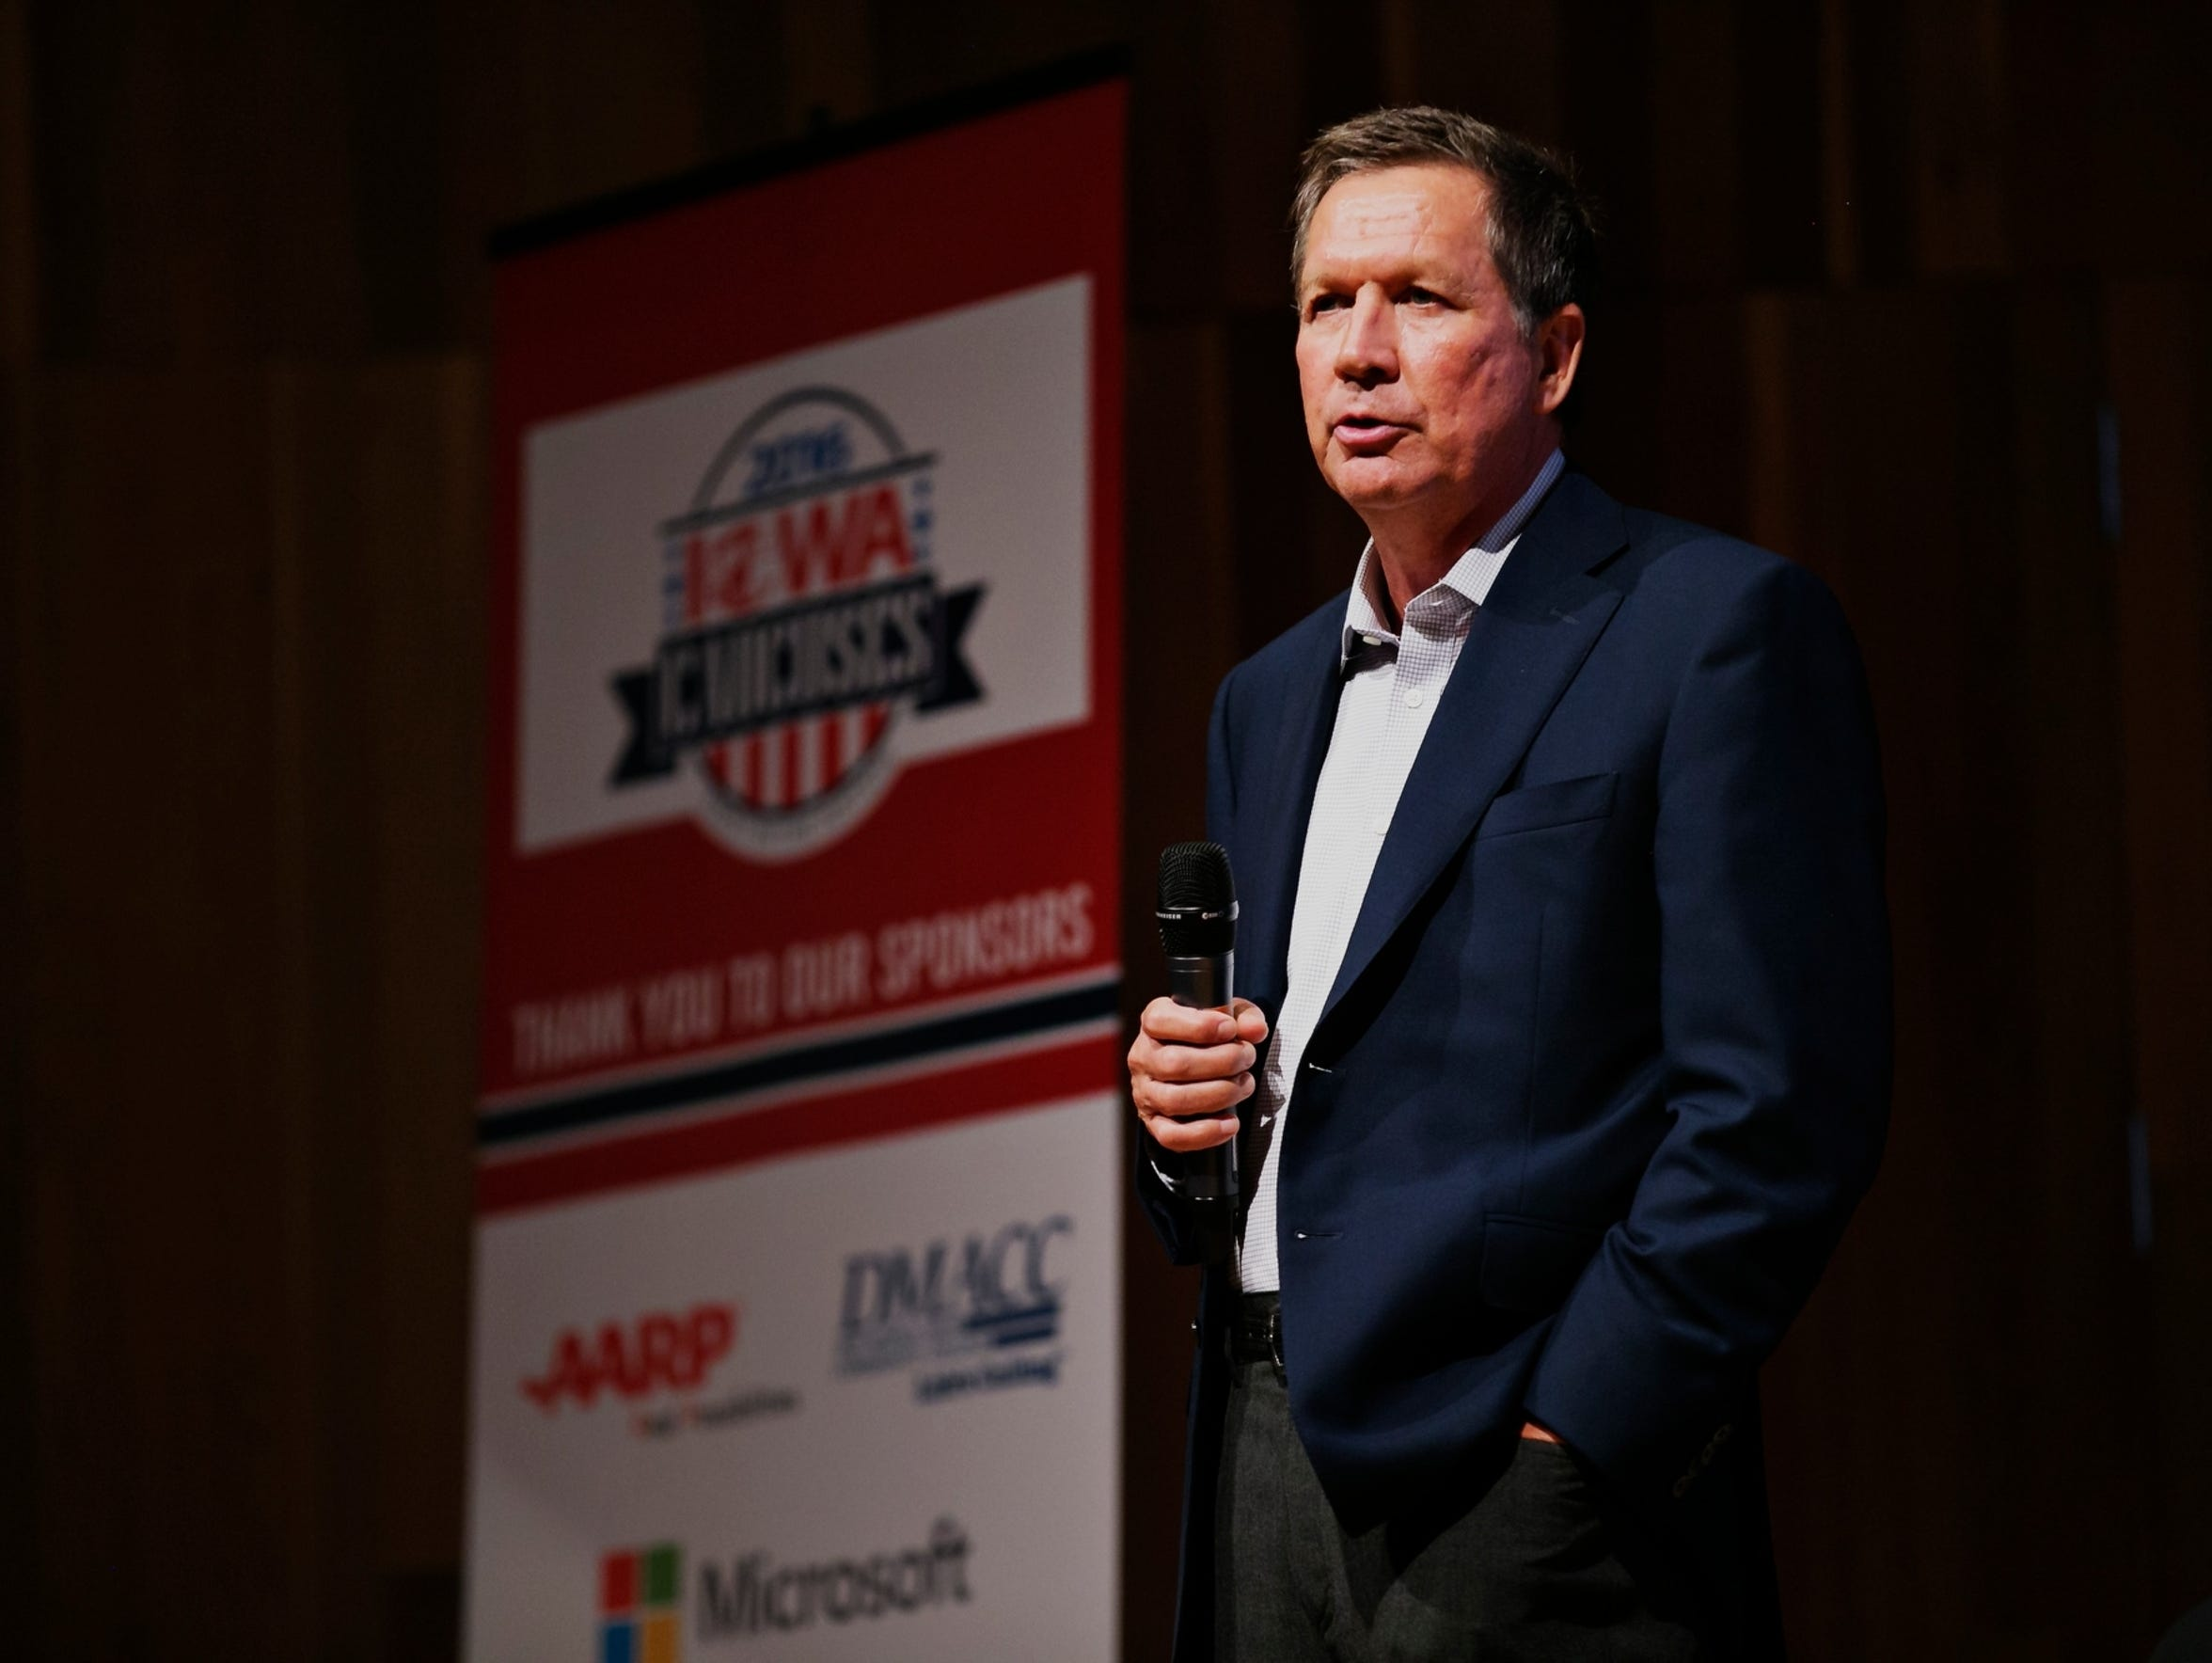 Ohio Governor John Kasich speaks during the 2016 Iowa